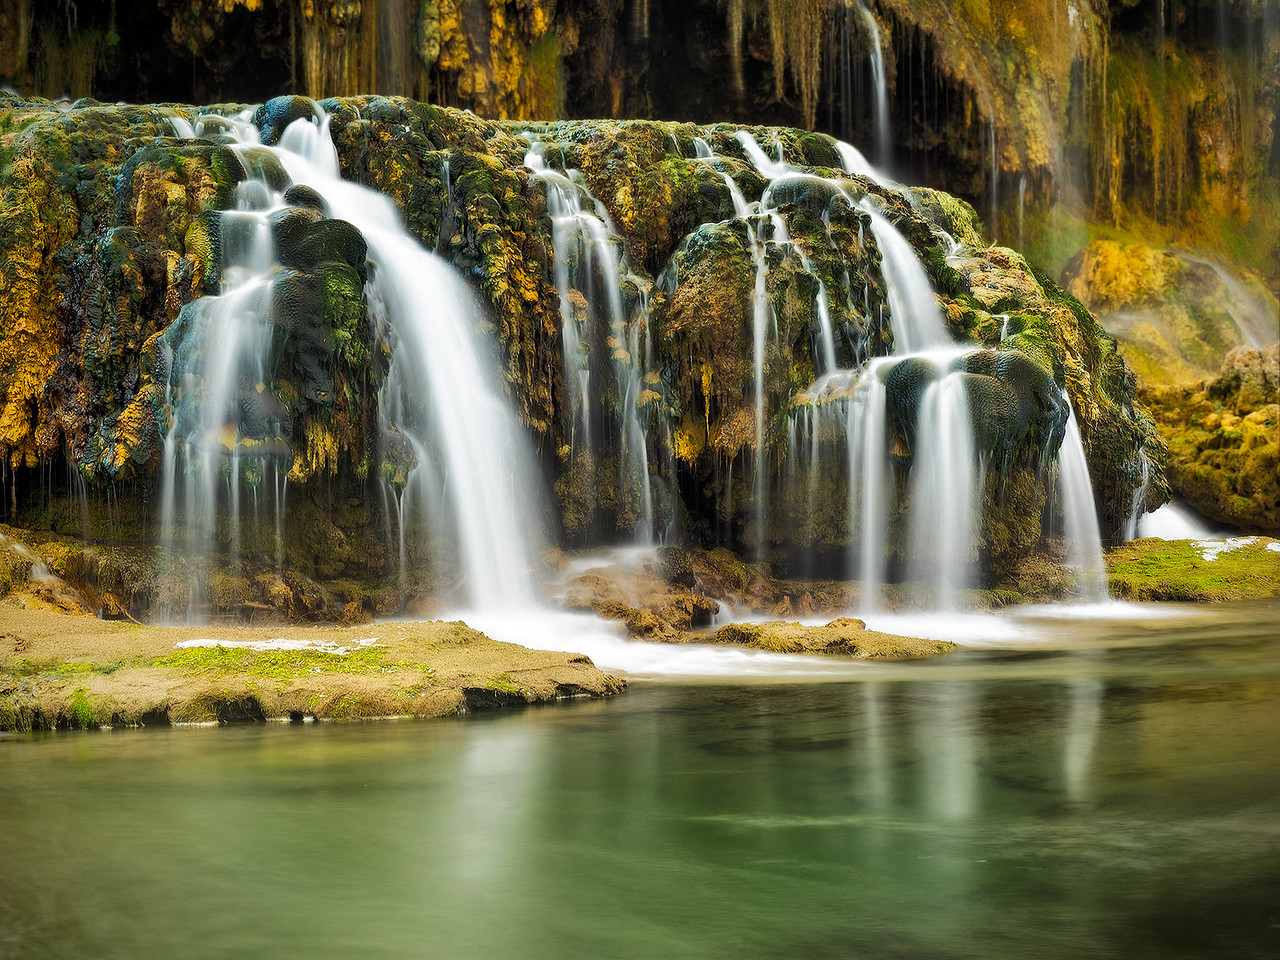 5-Master-Assigned_-_Long_Exposure_-_Show_the_blur_of_movement-DNP-Tom_Horton-Falls_Creek_Swan_Valley